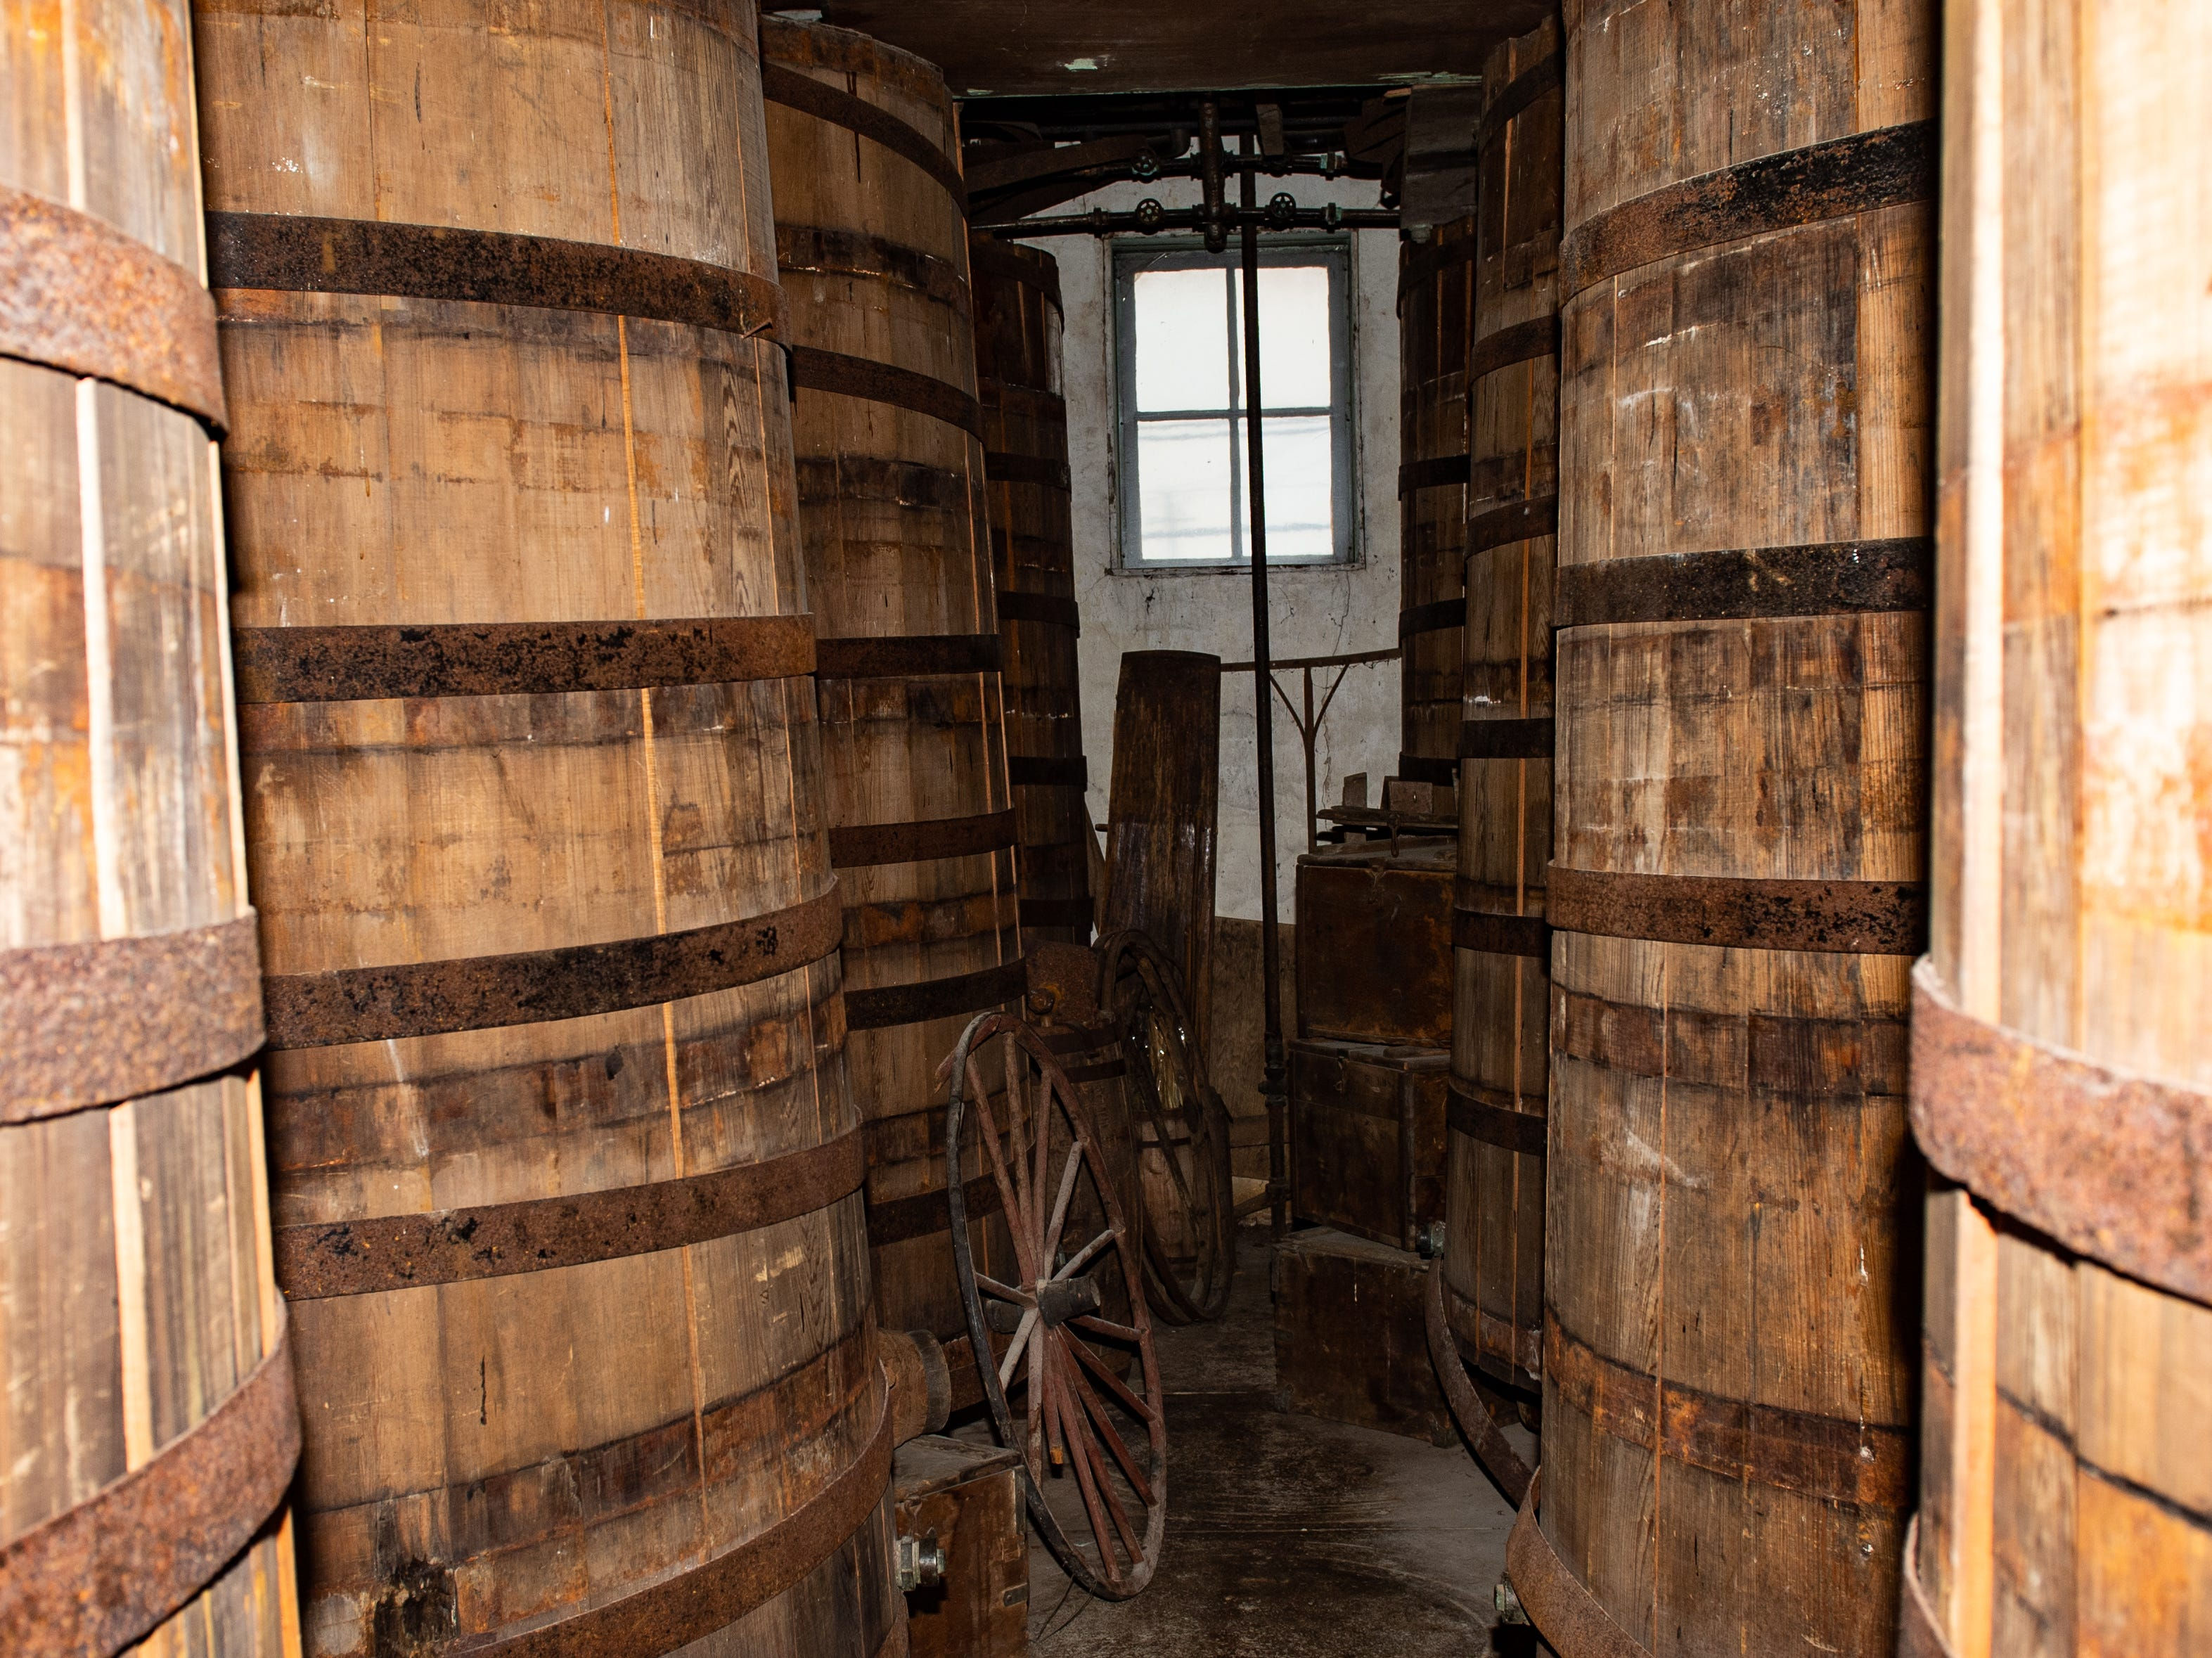 The fermenting room on the second floor of Bube's Brewery. During the 19th century this room was used as the first step in the brewing process. Directly below the fermenting room was the conditioning room. The beer would be transferred from one barrel to the next via gravity, where the beer would then sit until it reached peek flavor. From there it would be moved to the cellar, now the catacombs, for storage. Each barrel would hold approximately 1,800 gallons of beer, February 22, 2019.